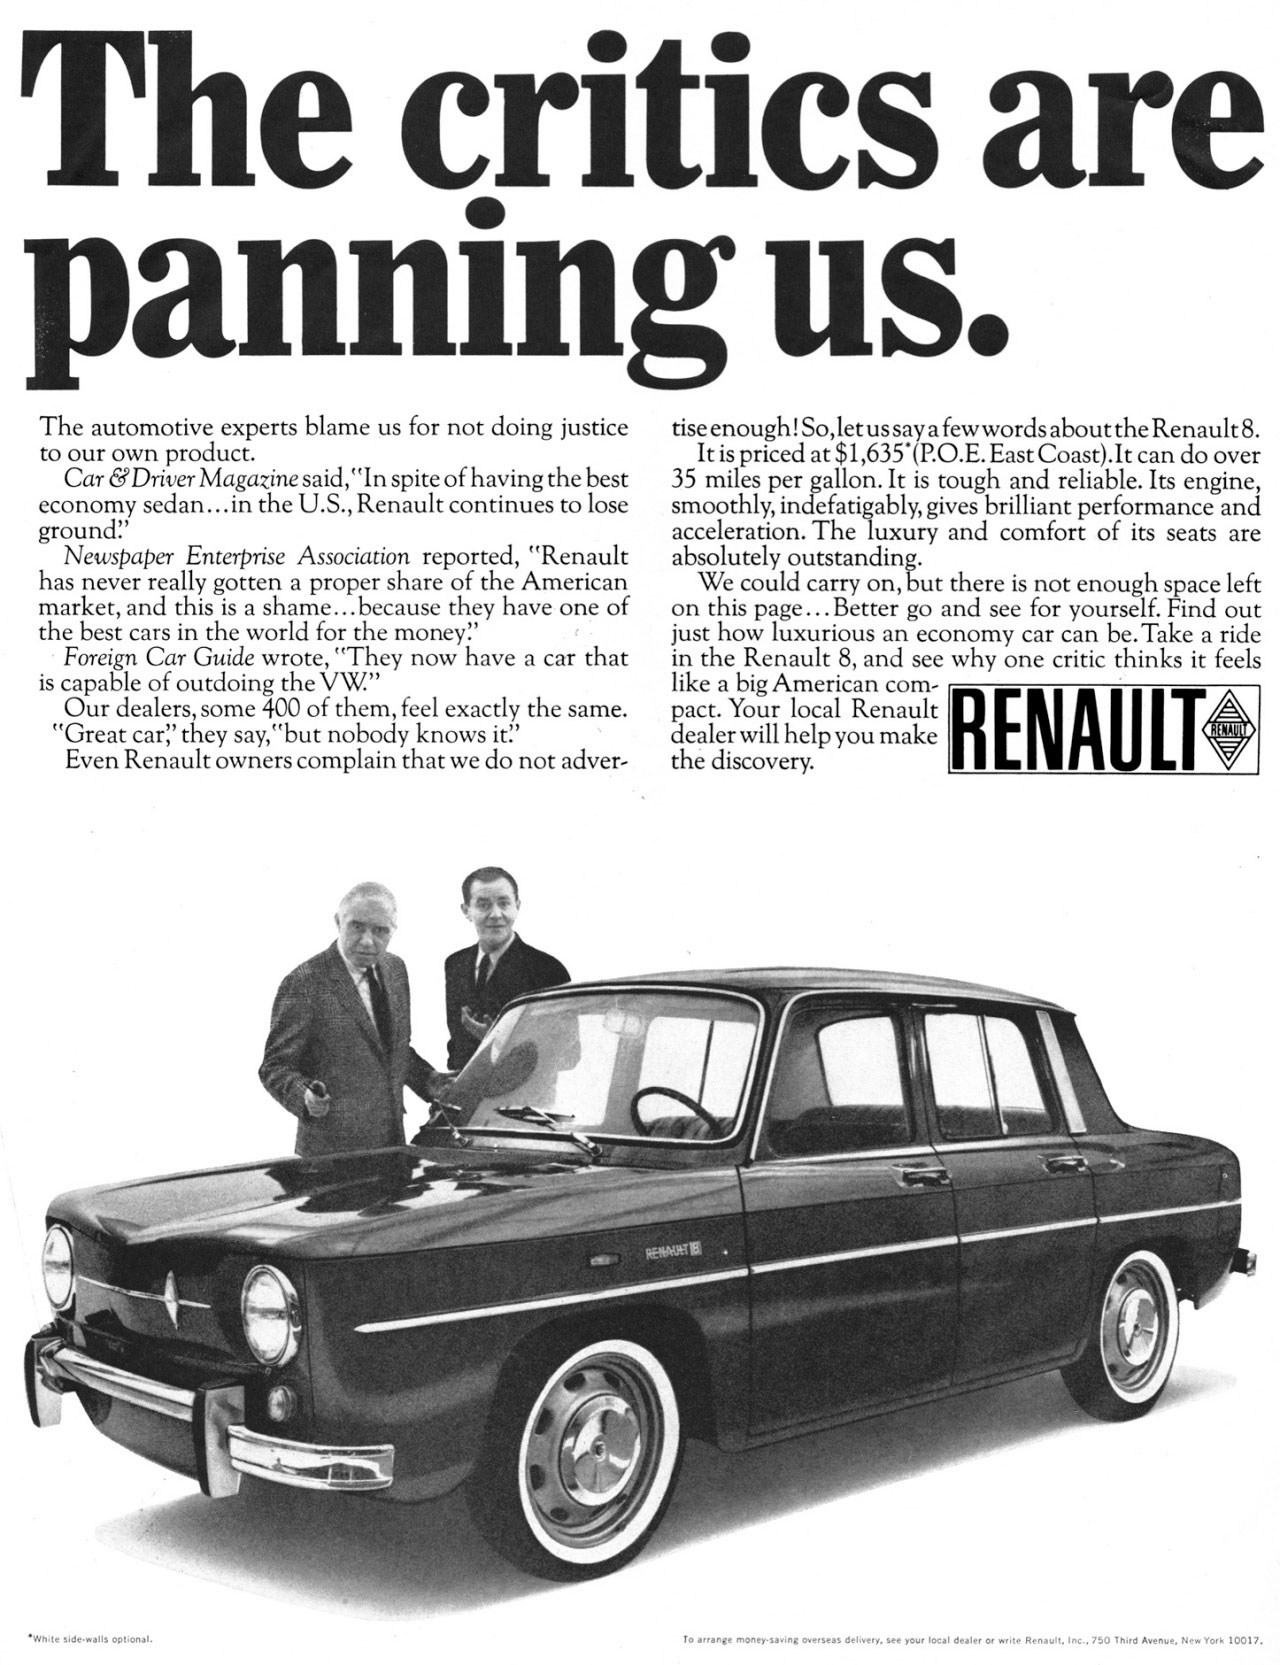 The critics are panning us.  The automotive experts blame us for not doing justice to our own product. Car &Driver Magazine said,''In spite of having the best economy sedan...in the U.S., Renault continues to lose ground!' Newspaper Enterprise Association reported, ''Renault has never really gotten a proper share of the American market, and this is a shame...because they have one of the best cars in the world for the money!' Foreign Car Guide wrote, ''They now have a car that is capable of outdoing the VW'' Our dealers, some 400 of them, feel exactly the same. ''Great car,' they say,''but nobody knows it!' Even Renault owners complain that we do not adver- rise enough! So, let us say a few words about the Renault 8. It is priced at $1,635*(P.O.E. East Coast),It can do over 35 miles per gallon. It is tough and reliable. Its engine, smoothly, indefatigably, gives brilliant performance and acceleration. The luxury and comfort of its seats are absolutely outstanding. We could carry on, but there is not enough space left on this page ...Better go and see for yourself. Find out just how luxurious an economy car can be. Take a ride in the Renault 8, and see why one critic thinks it feels like a big American com-pact. Your local Renault dealer will help you make the discovery.  RENAULT